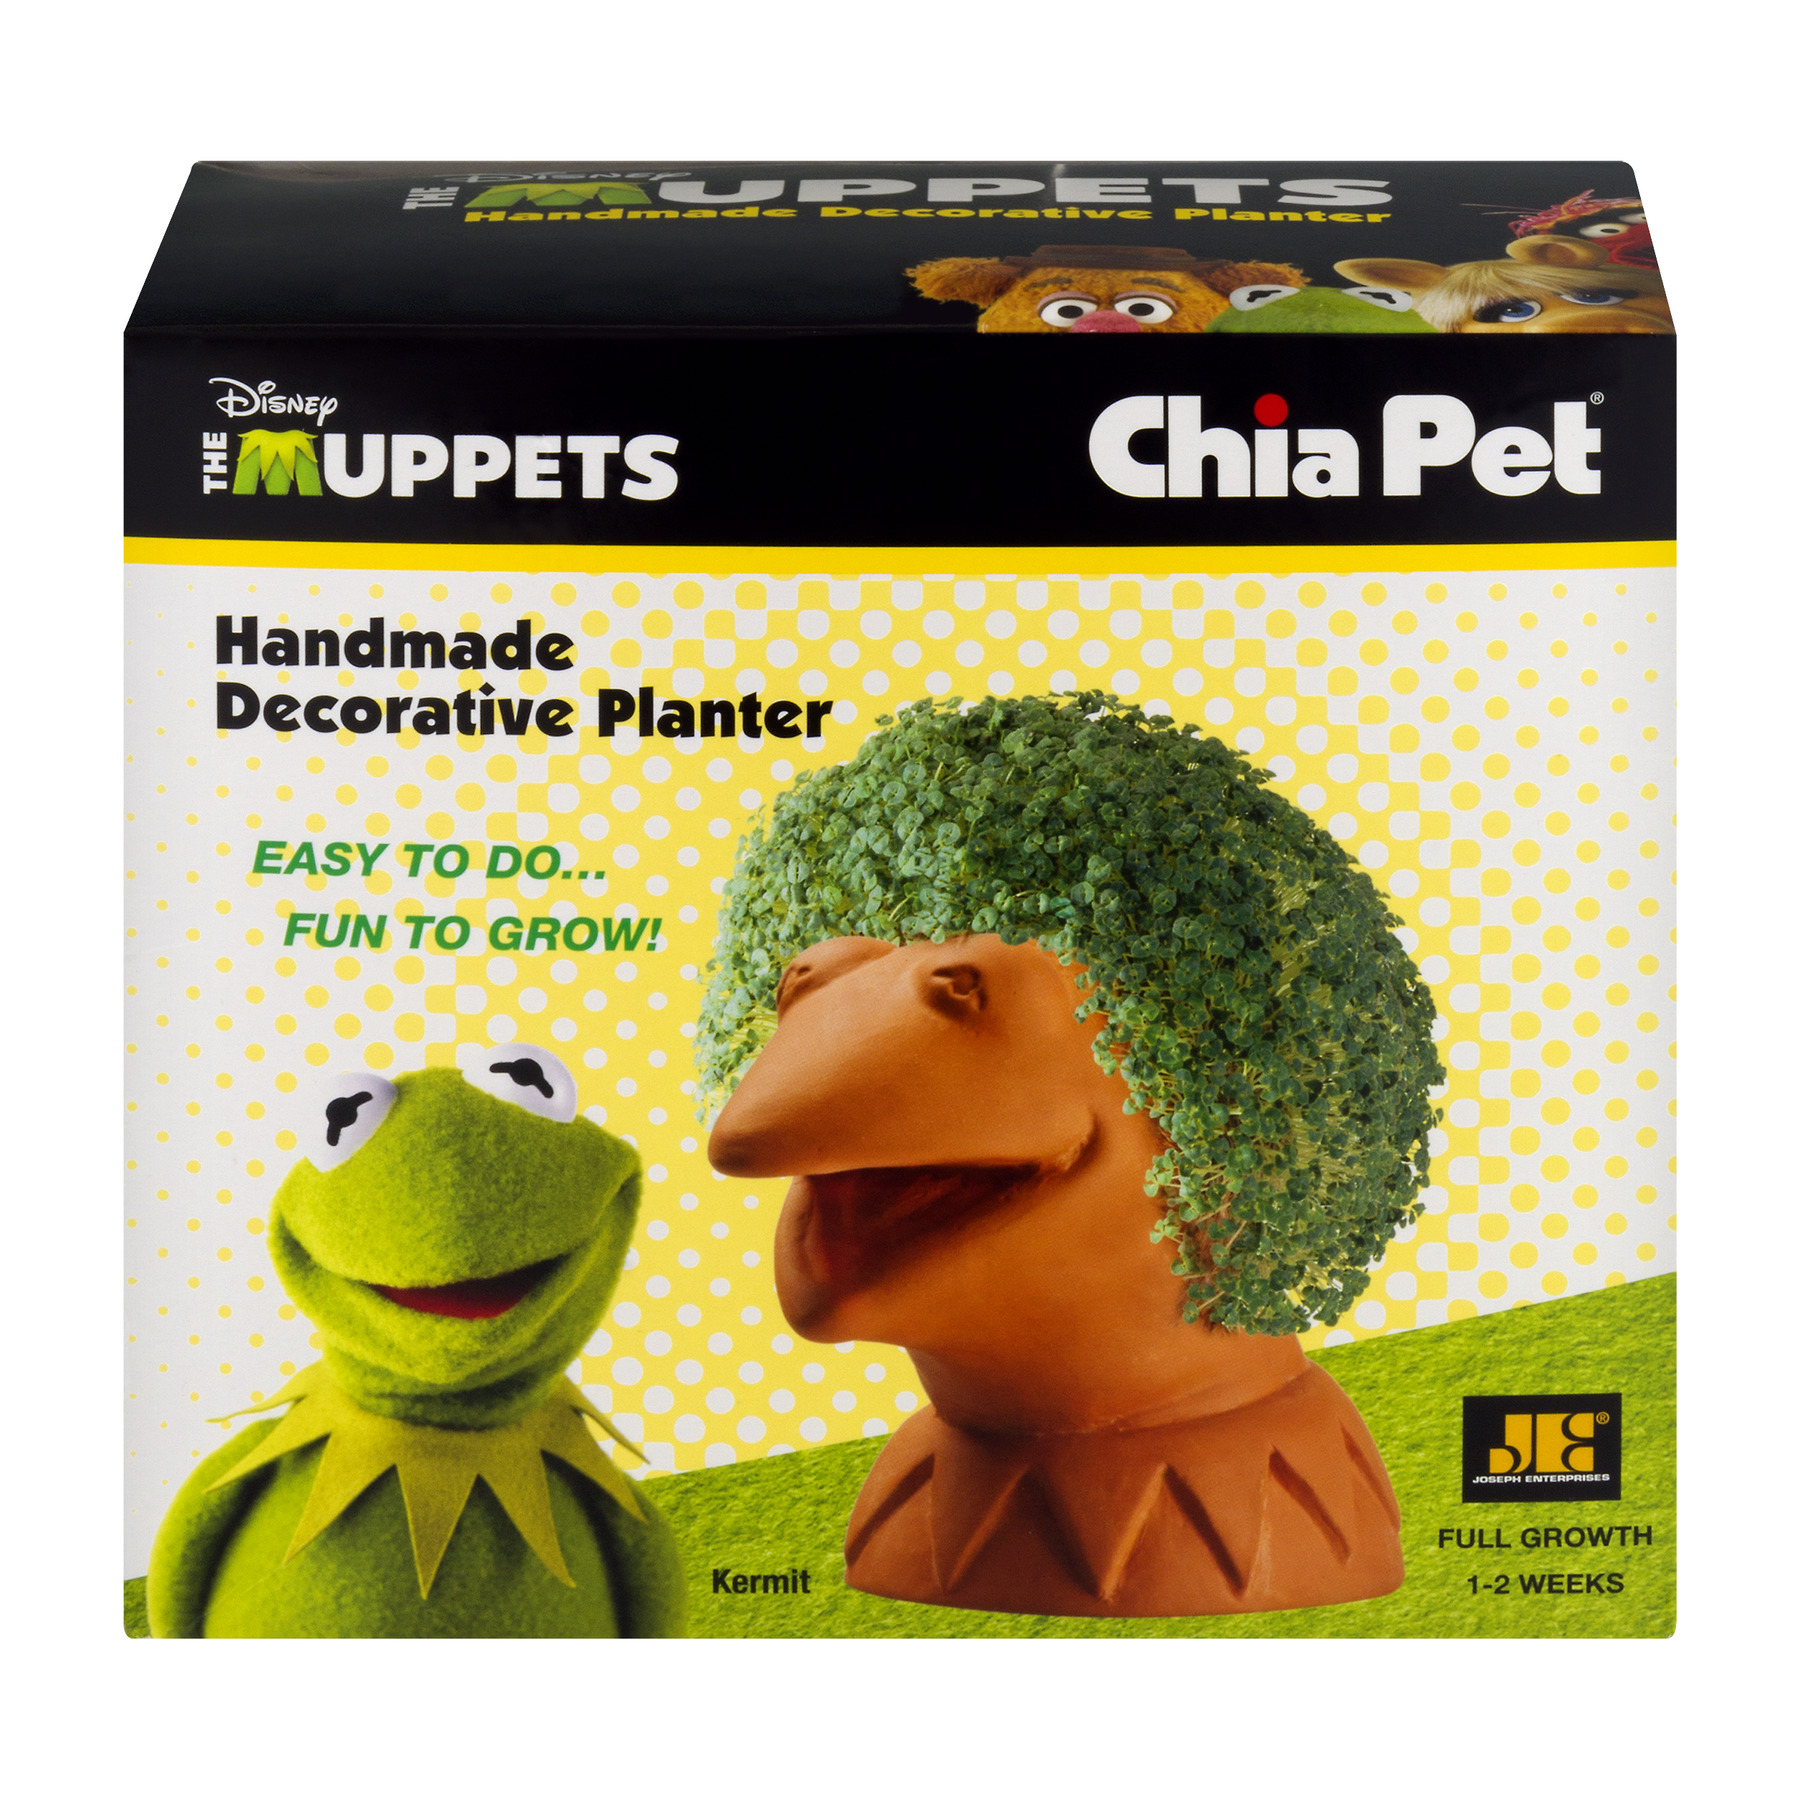 As Seen on TV Chia Pet - Disney The Muppets Handmade Decorative Planter